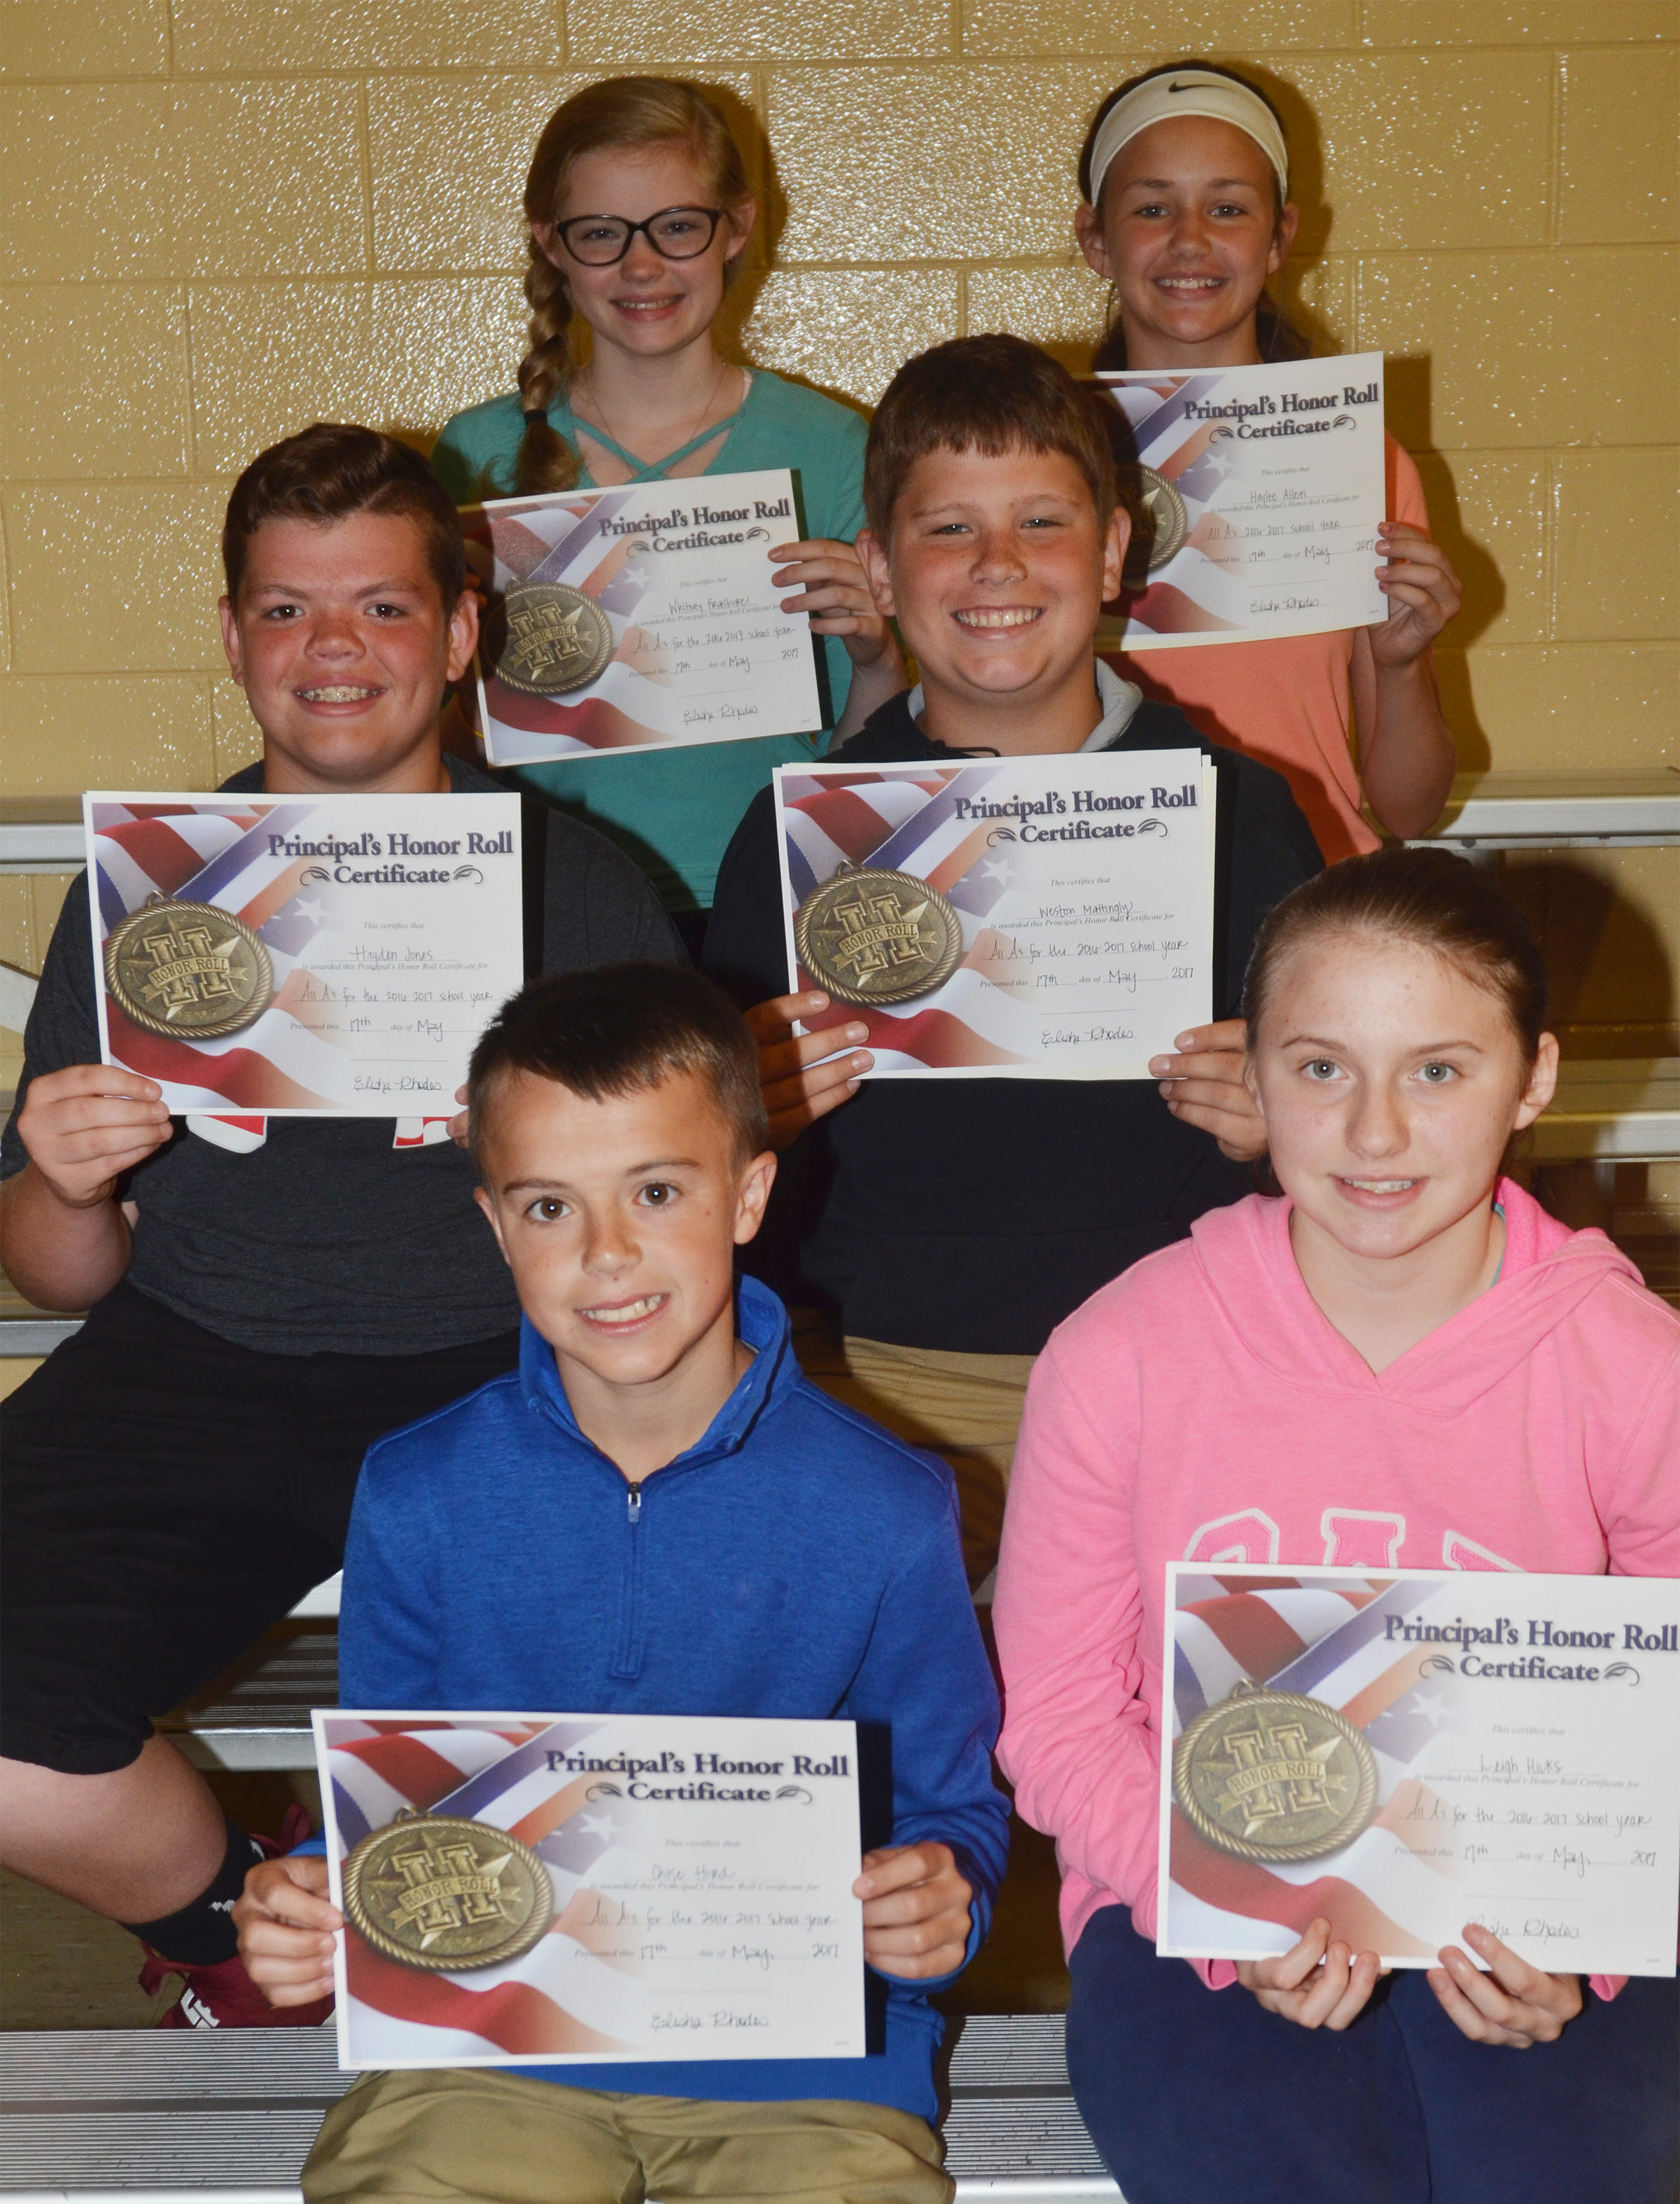 Sixth-grade principal's honor roll award winners are, from left, front, Chase Hord and Leigh Hicks. Second row, Hayden Jones and Weston Mattingly. Back, Whitney Frashure and Haylee Allen.